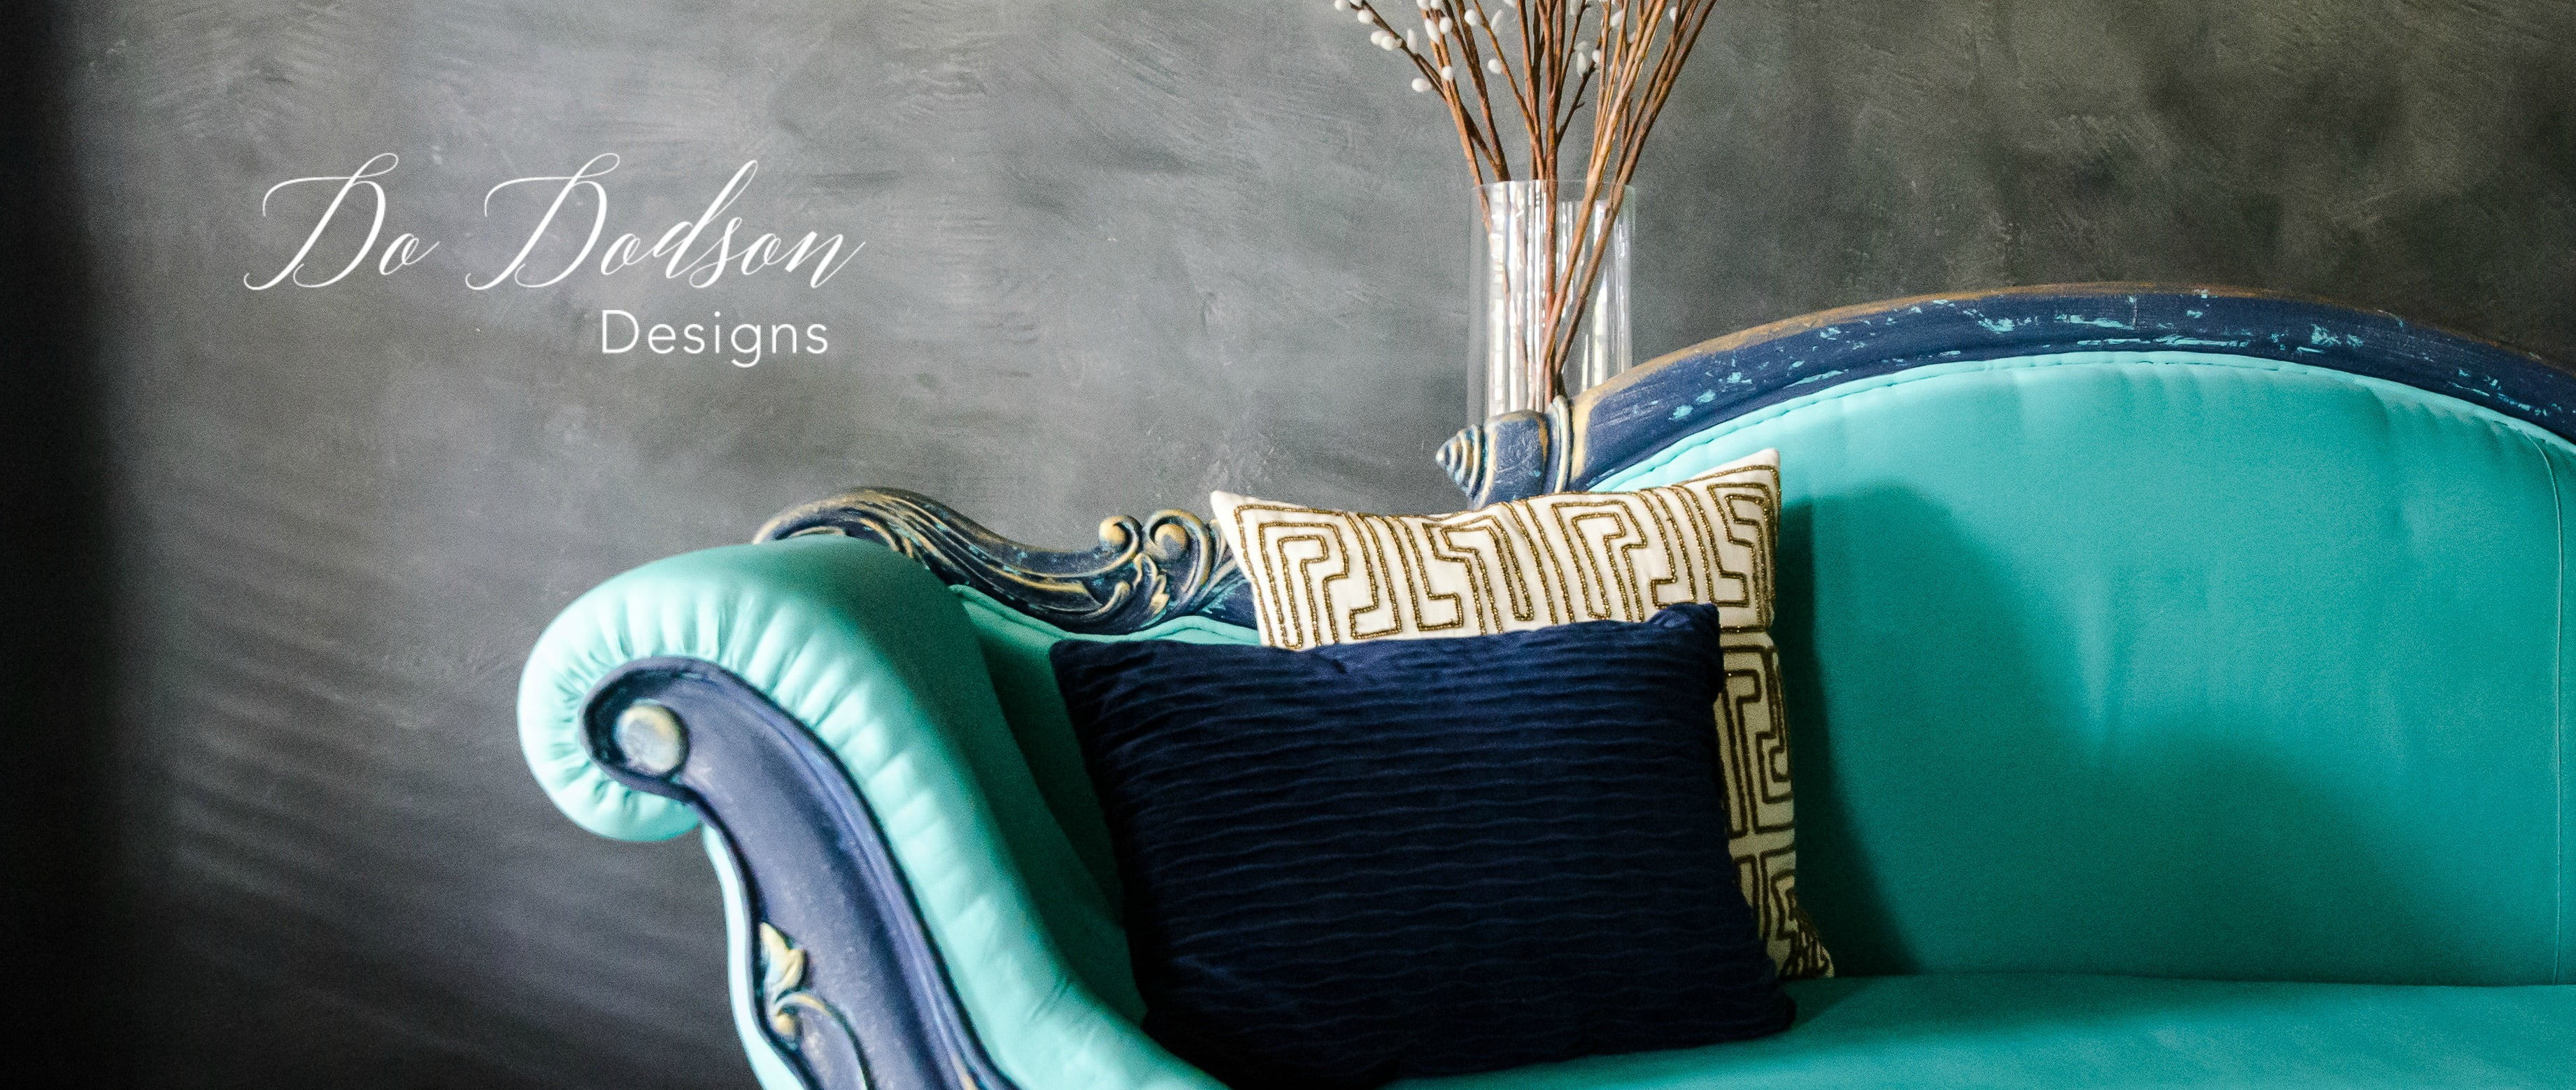 If You Think Painting Fabric Furniture is